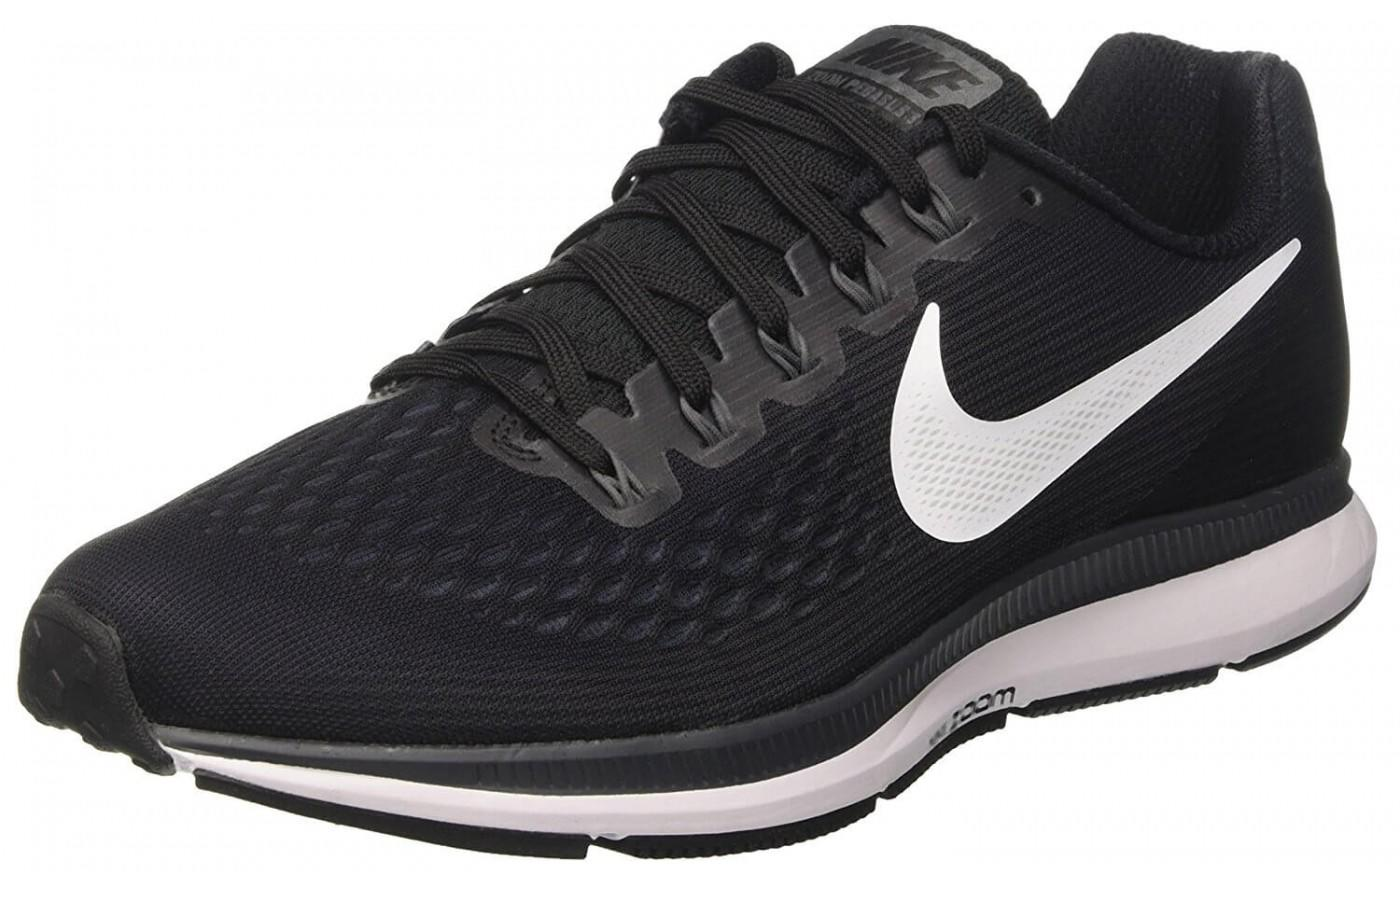 best website 16387 857c7 the upper of the Nike Air Zoom Pegasus 34 is made of breathable Flymesh ...